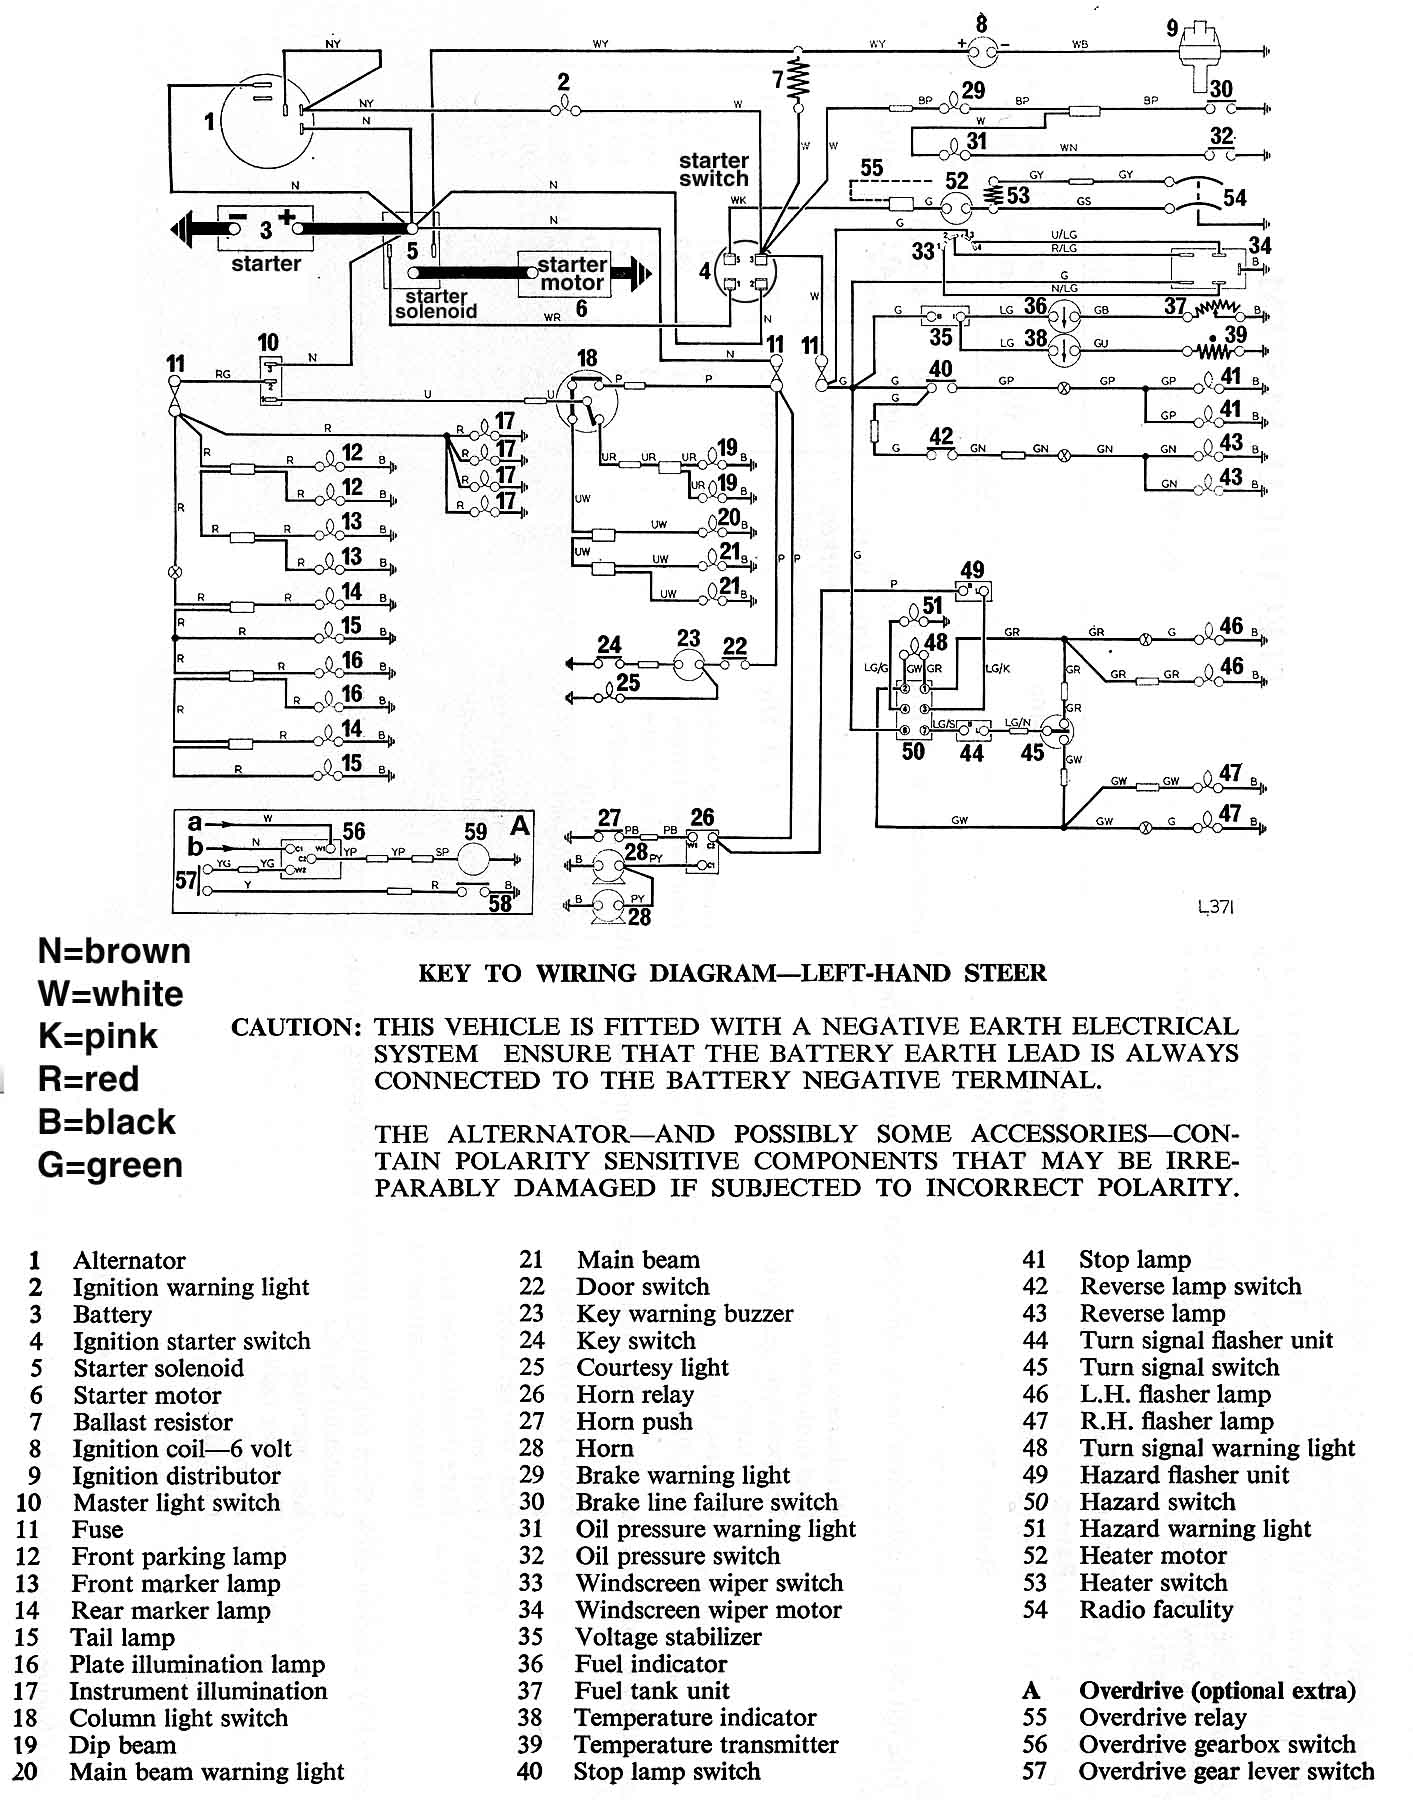 MKIVwire wiring schematics and diagrams triumph spitfire, gt6, herald 97 Jeep Cherokee Wiring Diagram at crackthecode.co